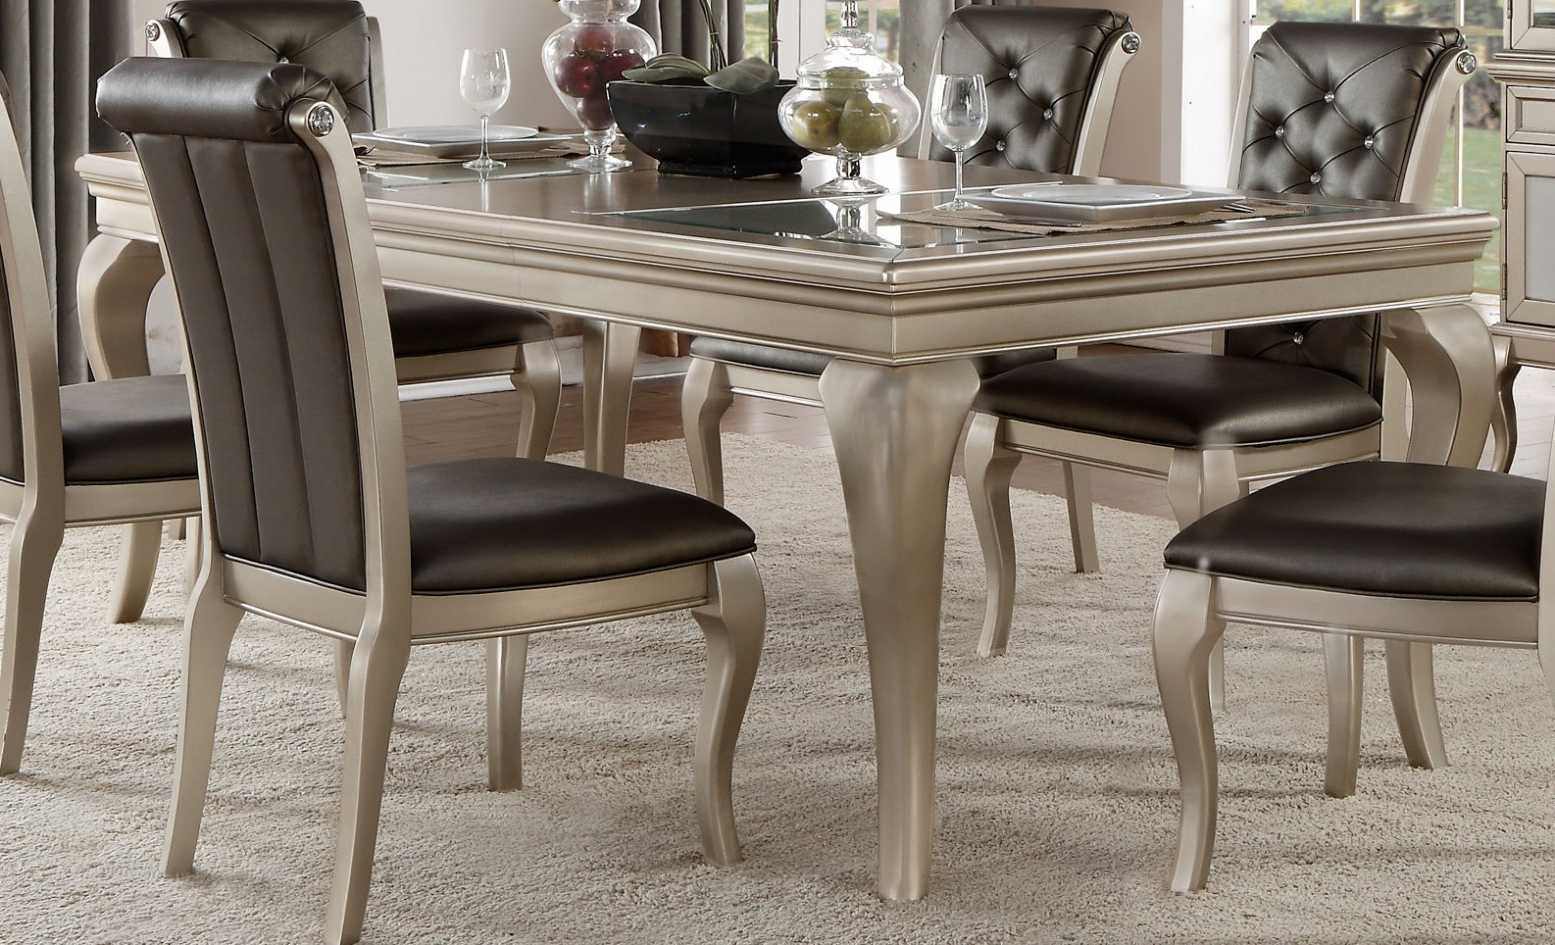 Crawford Transitional Rectangular Extendable Dining Table Within Popular Transitional Rectangular Dining Tables (View 4 of 30)